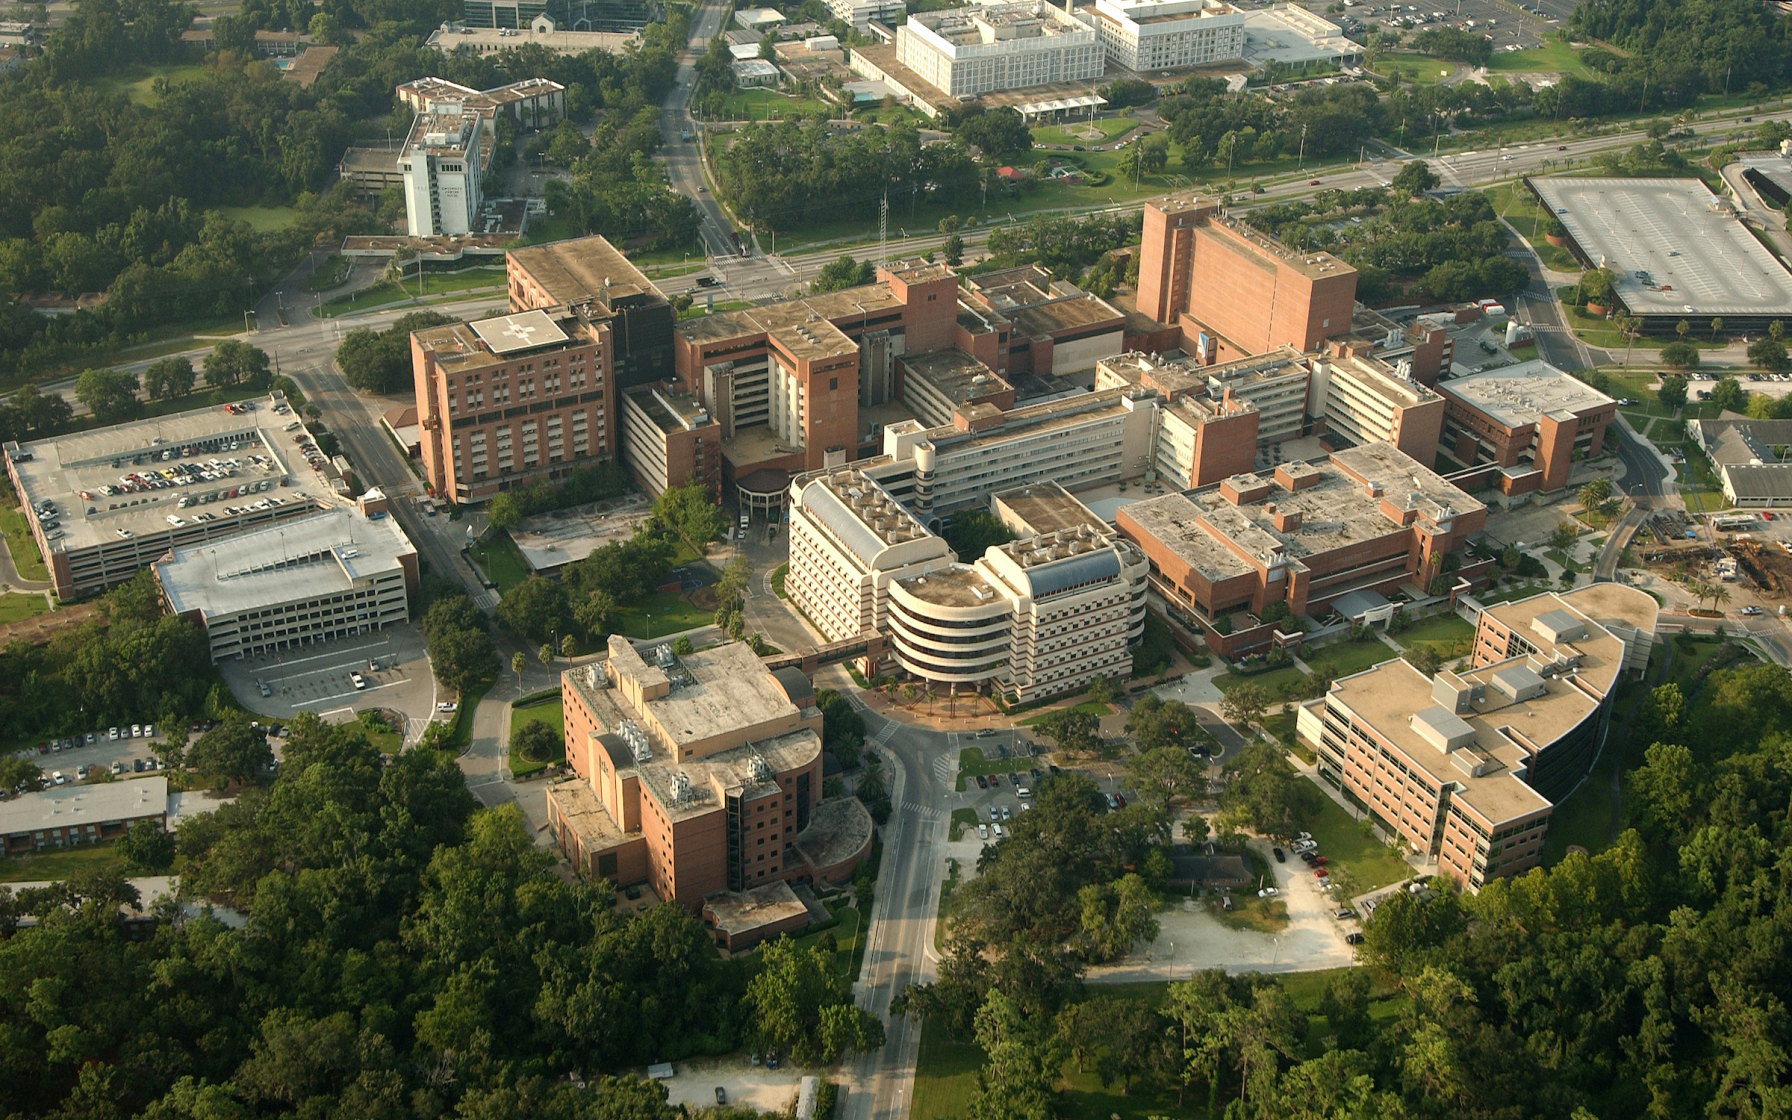 The medical campus at the University of Florida